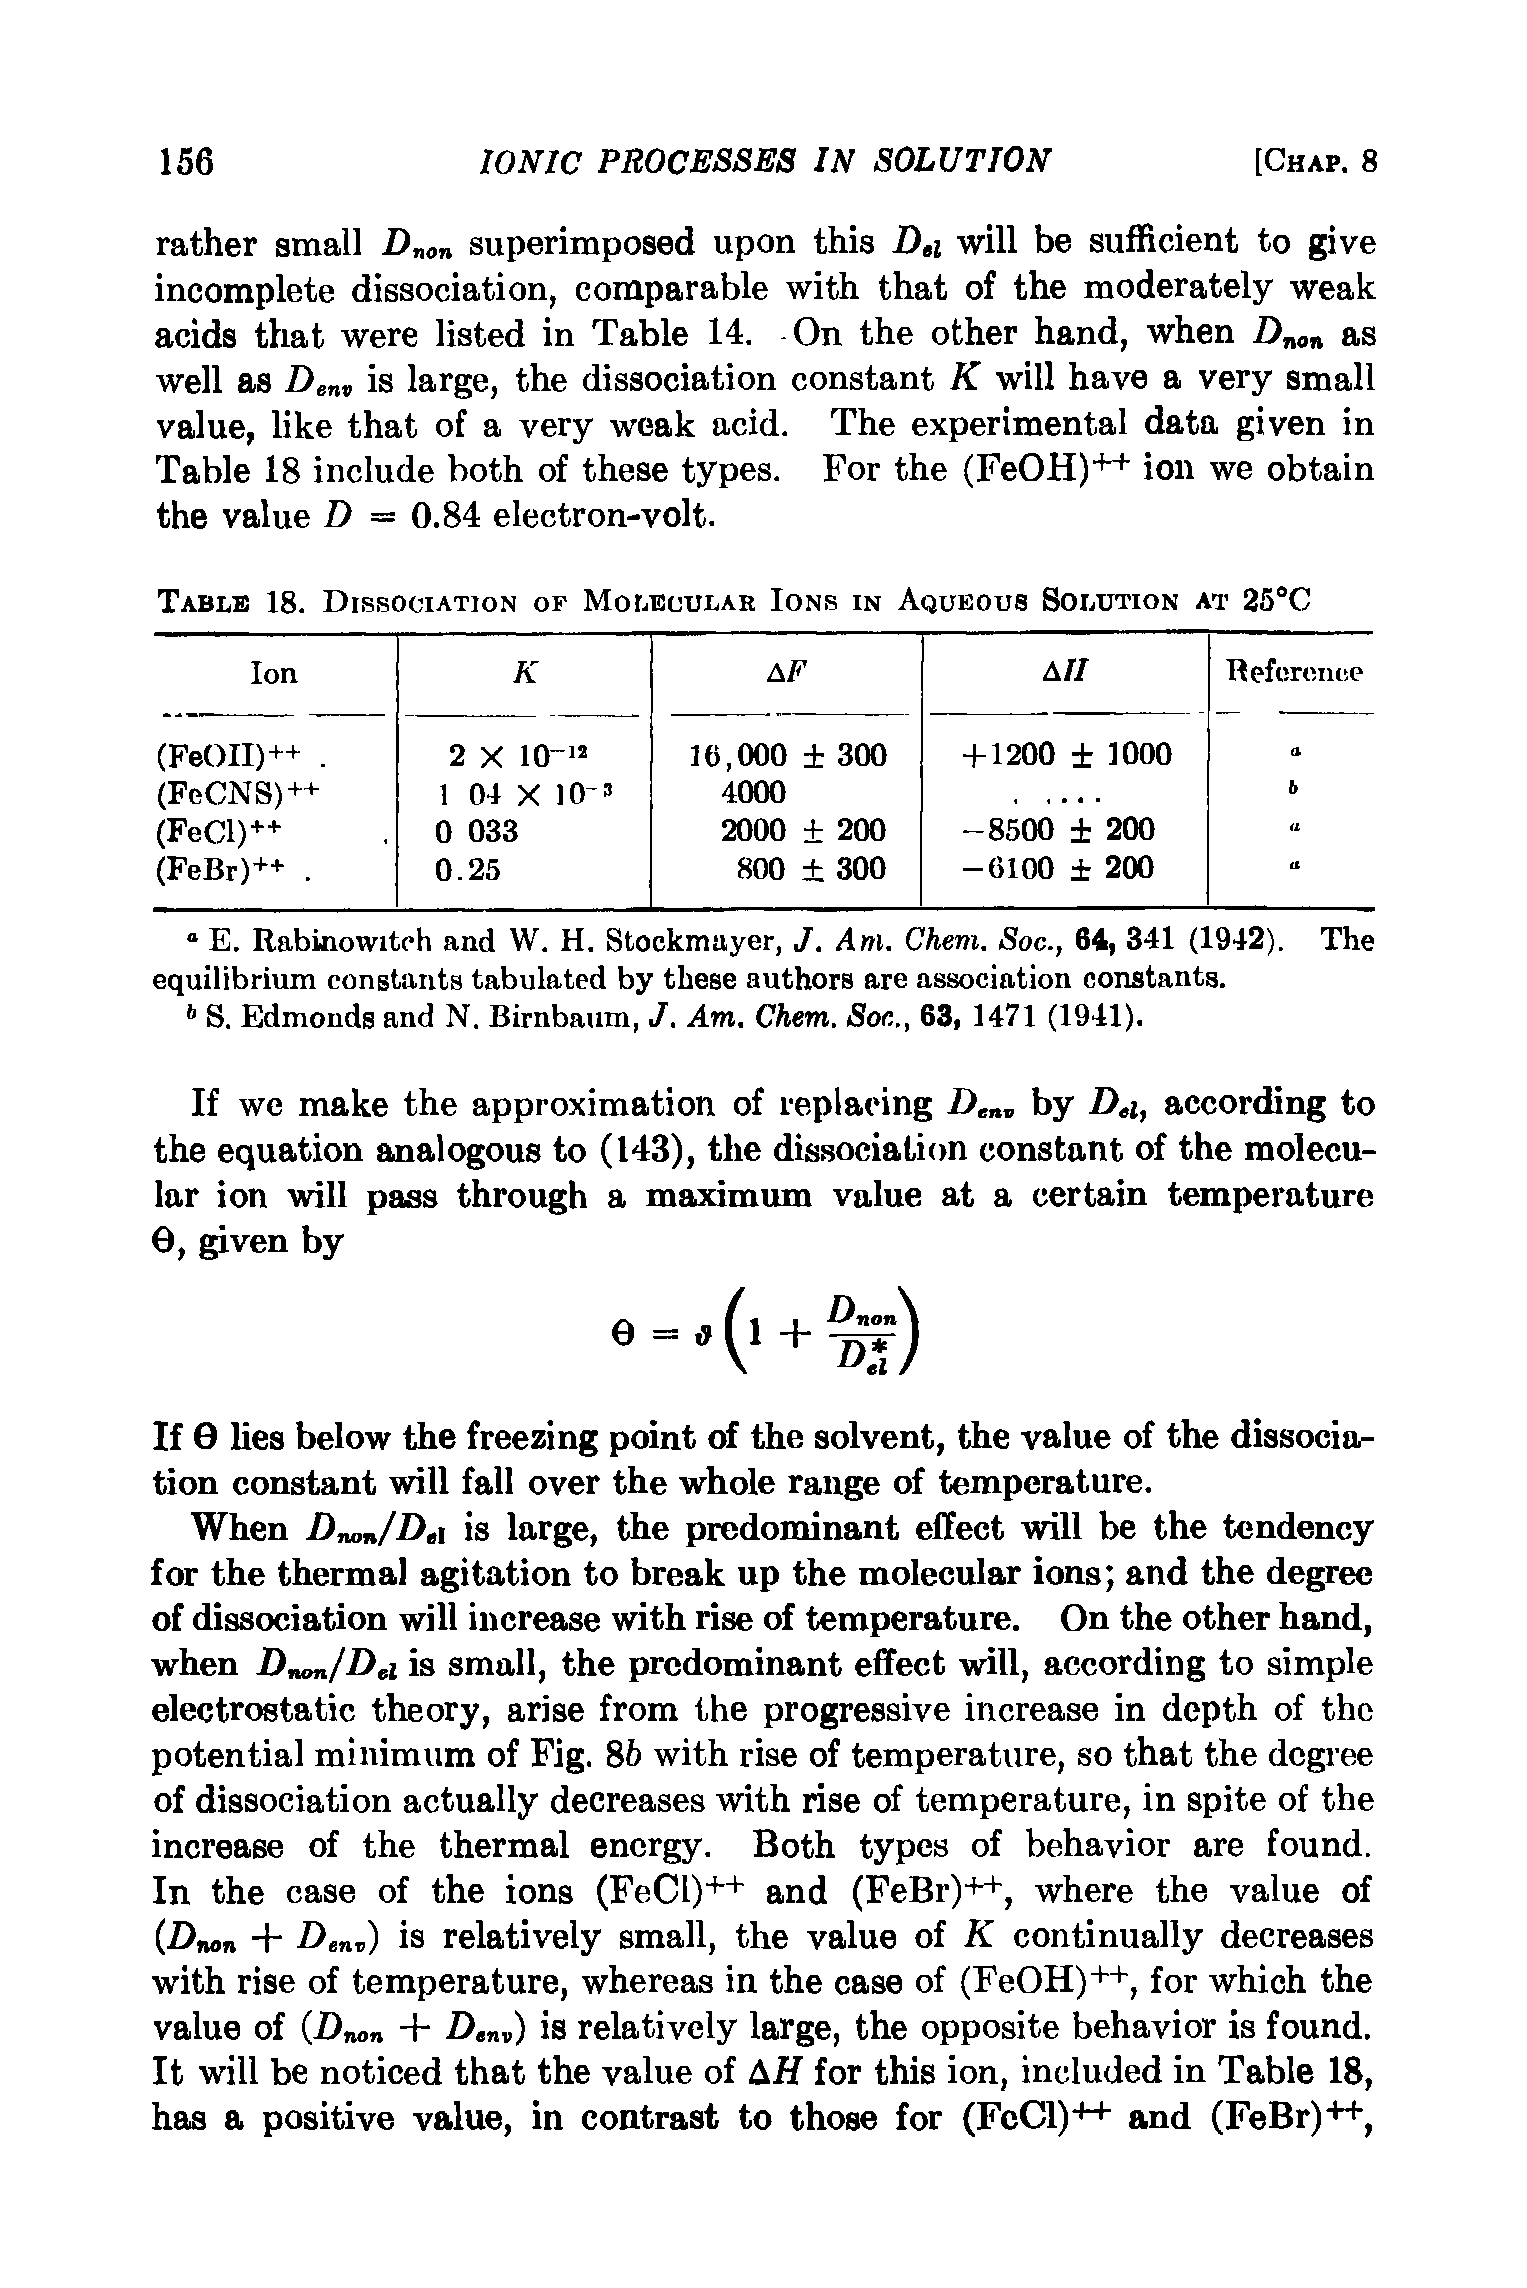 Table 18. Dissociation of Molecular Ions in Aqueous Solution at 25°C